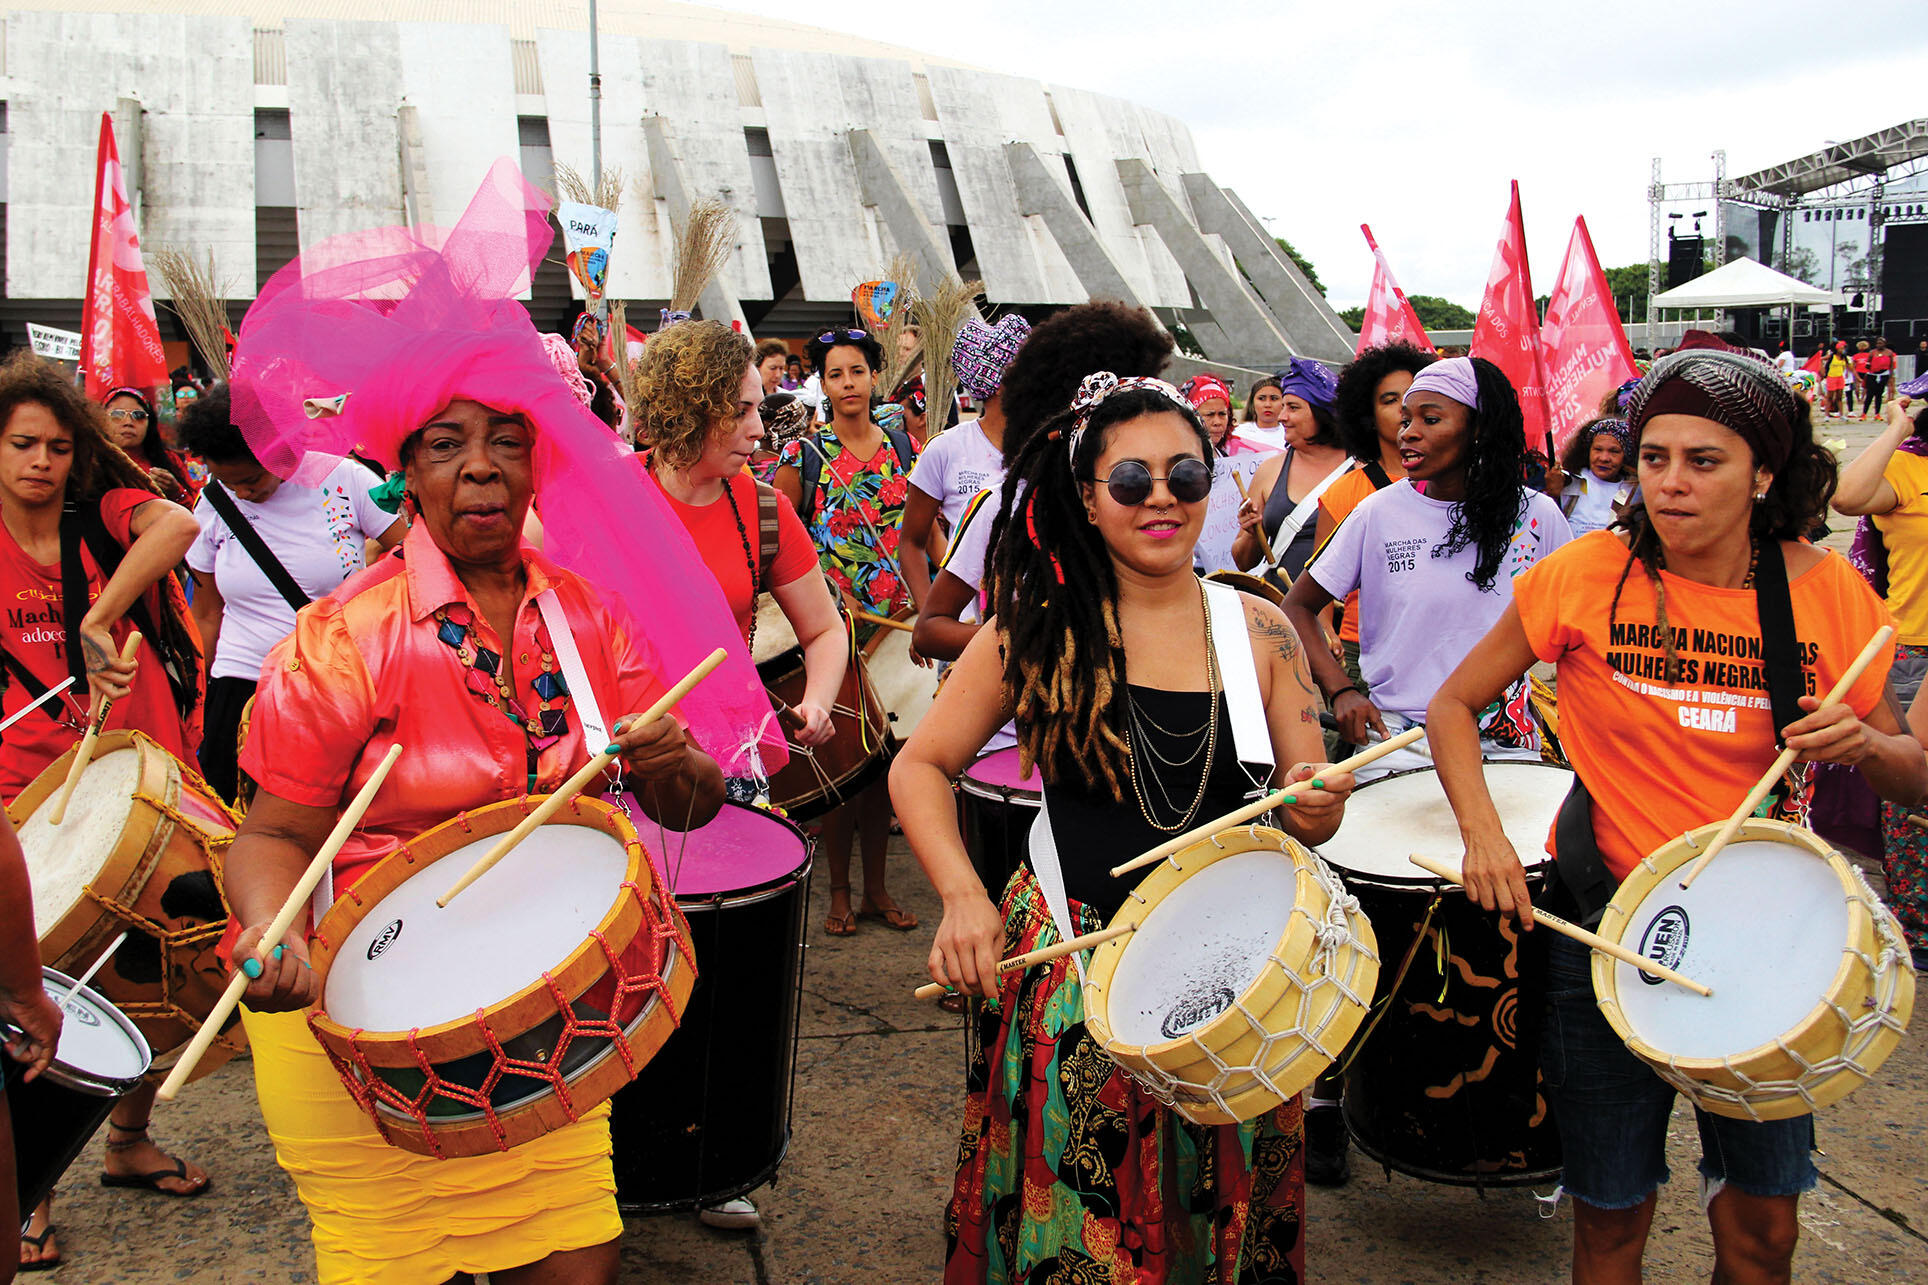 A group of colorfully dressed drummers in Brazil's National March of Black Women Against Racism, Violence, and for the Good Life, October 2015. (Photo courtesy of UN Women.)